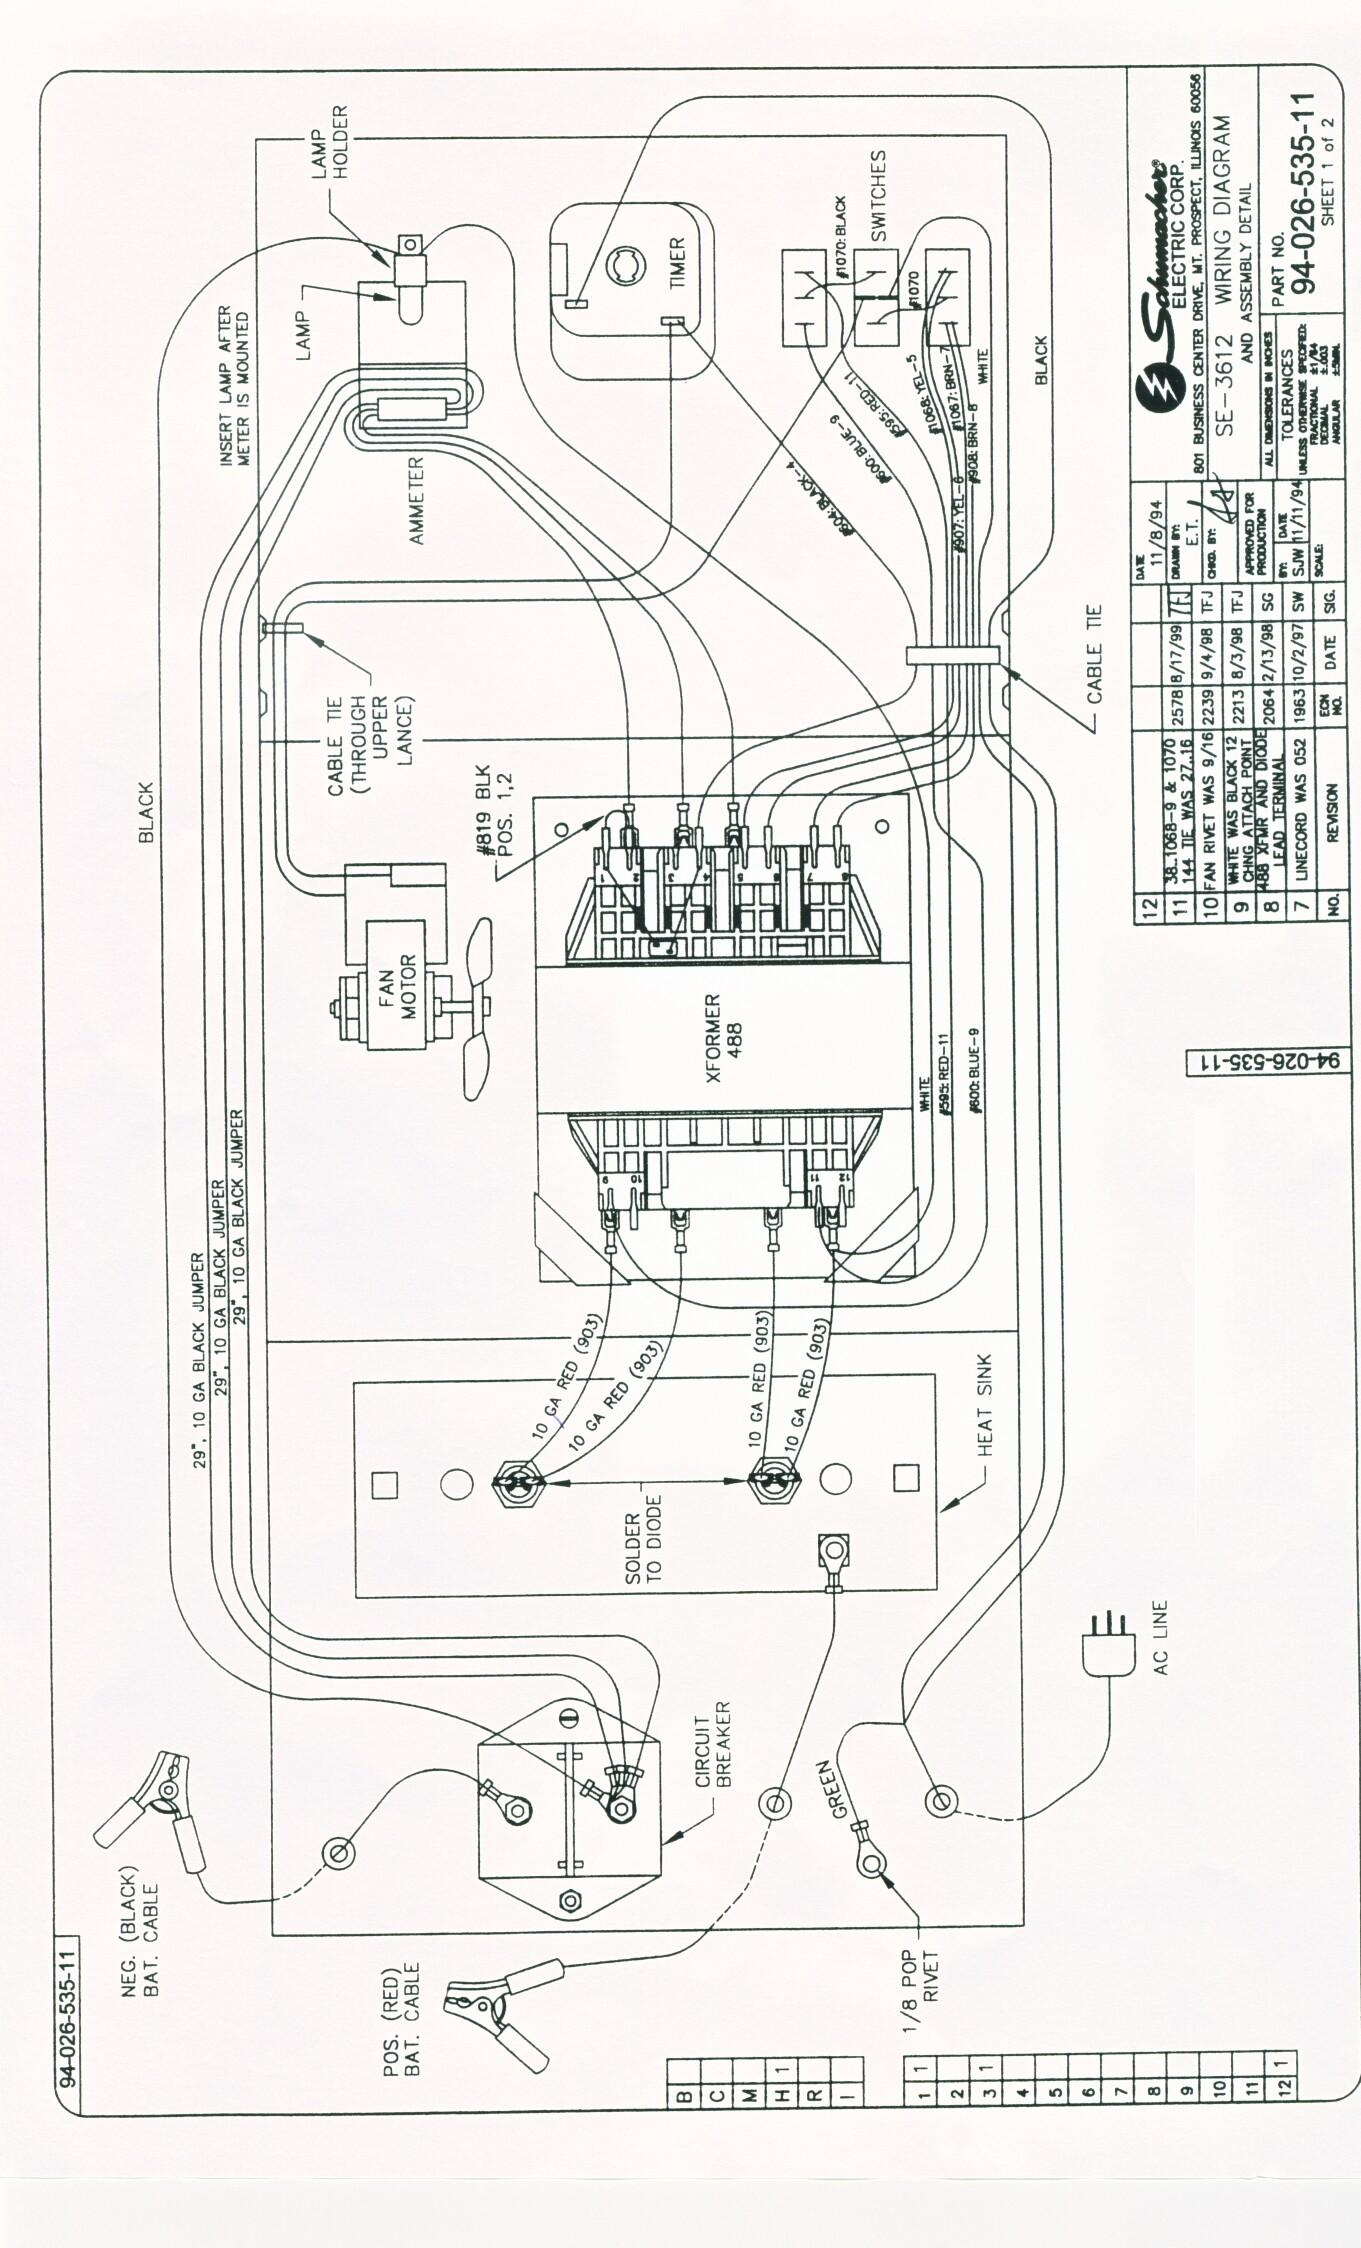 onboard battery charger wiring diagram